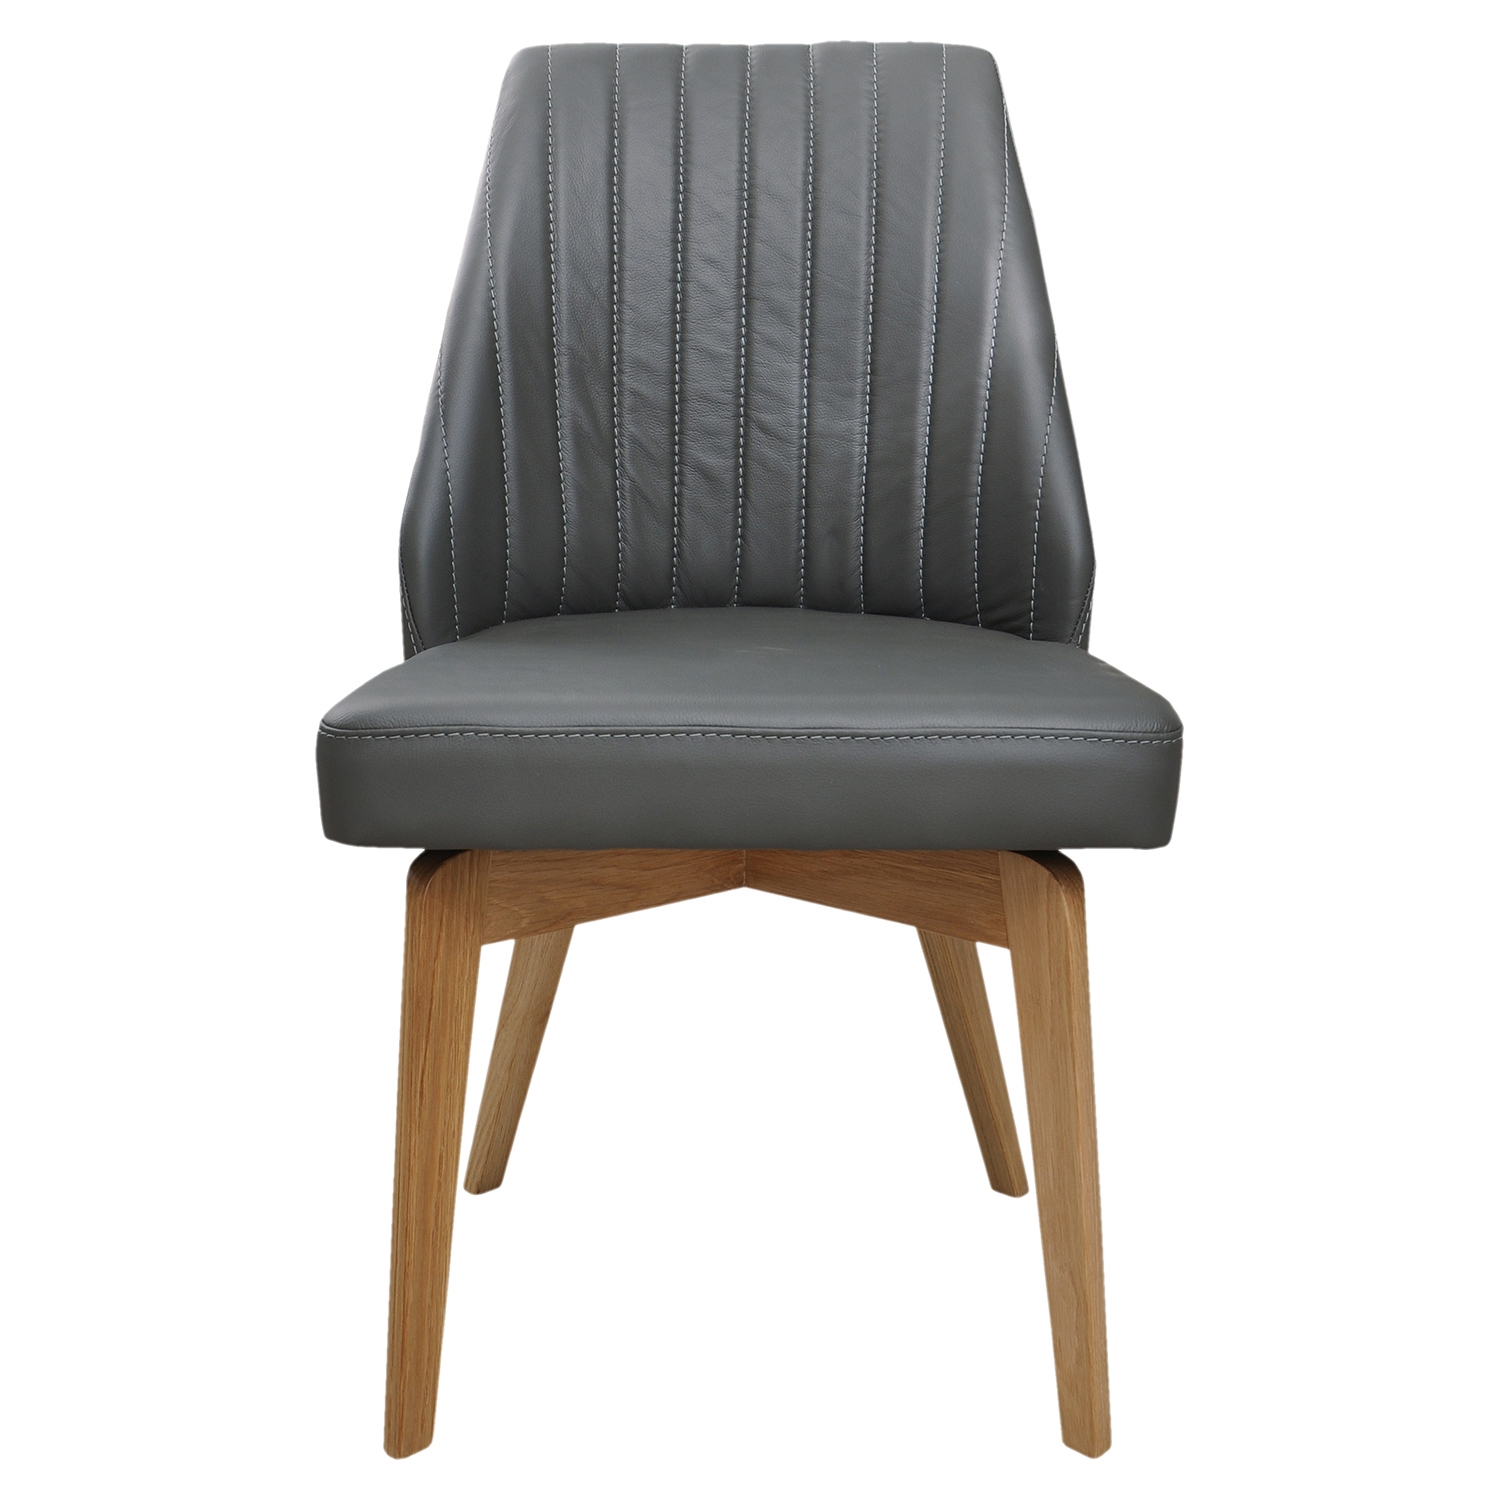 Nadine Leather Side Chair - Gray (Set of 2) - MOES-GO-1001-25